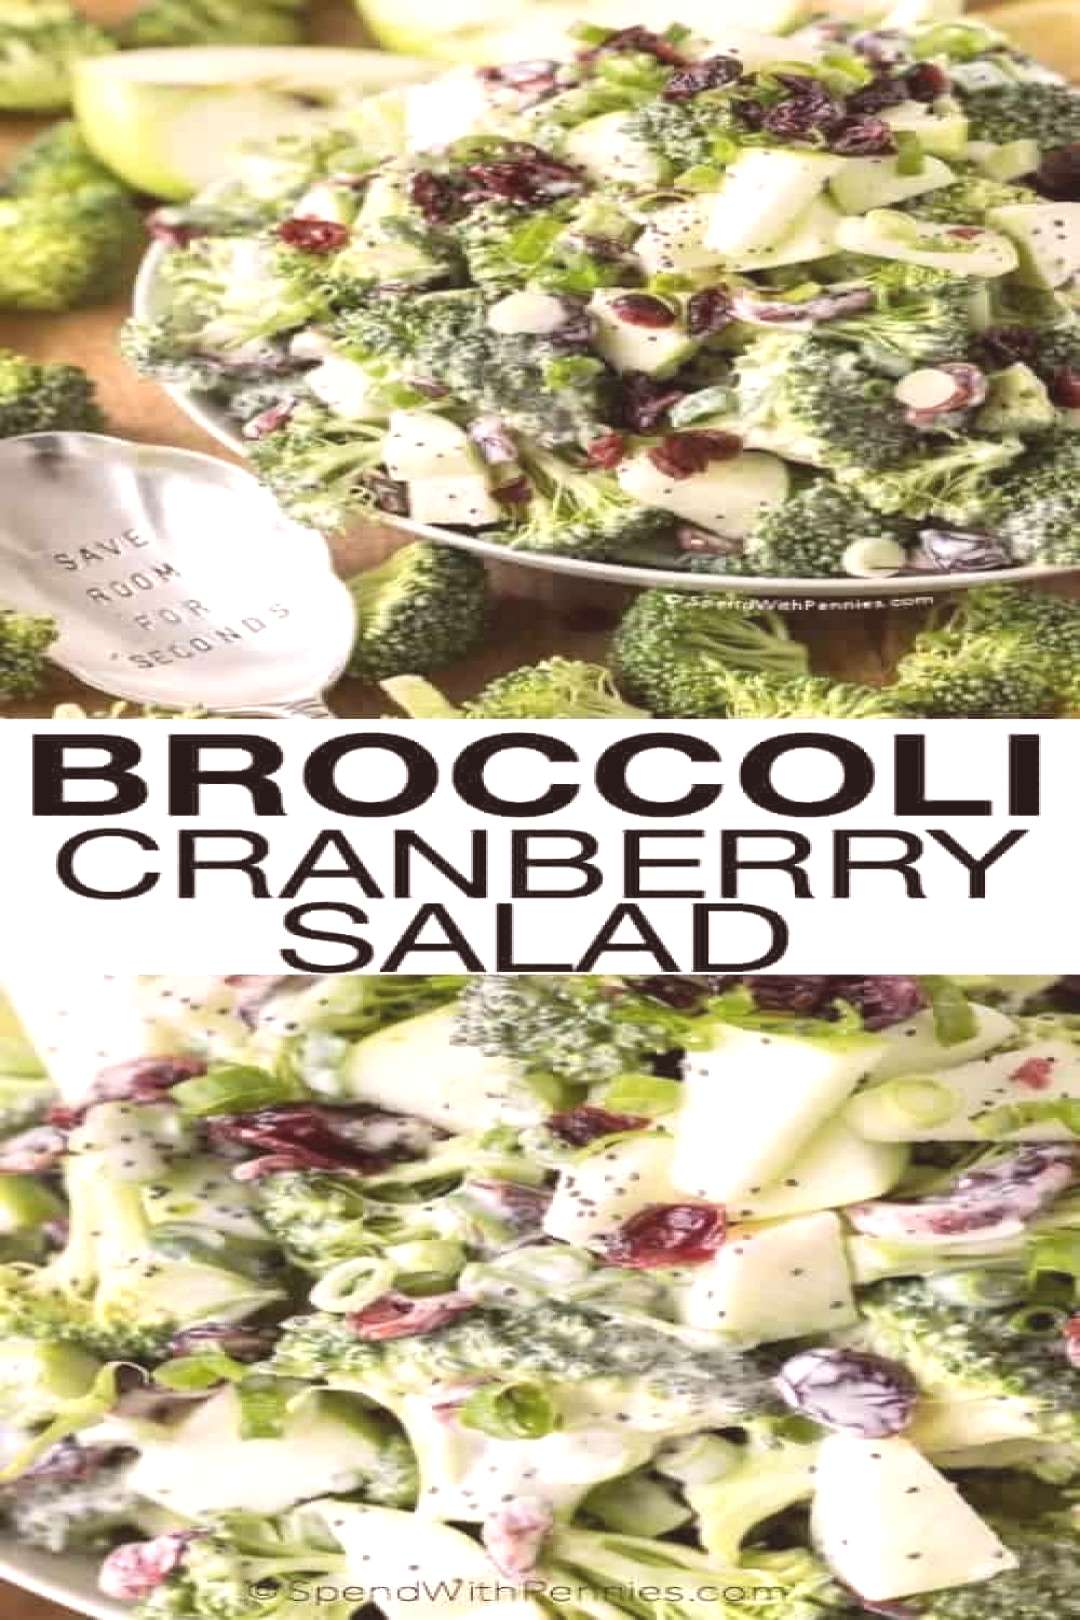 Broccoli Cranberry Salad amp Spend With Pennies Broccoli Cranberry Salad amp Spend With Pennies Spend